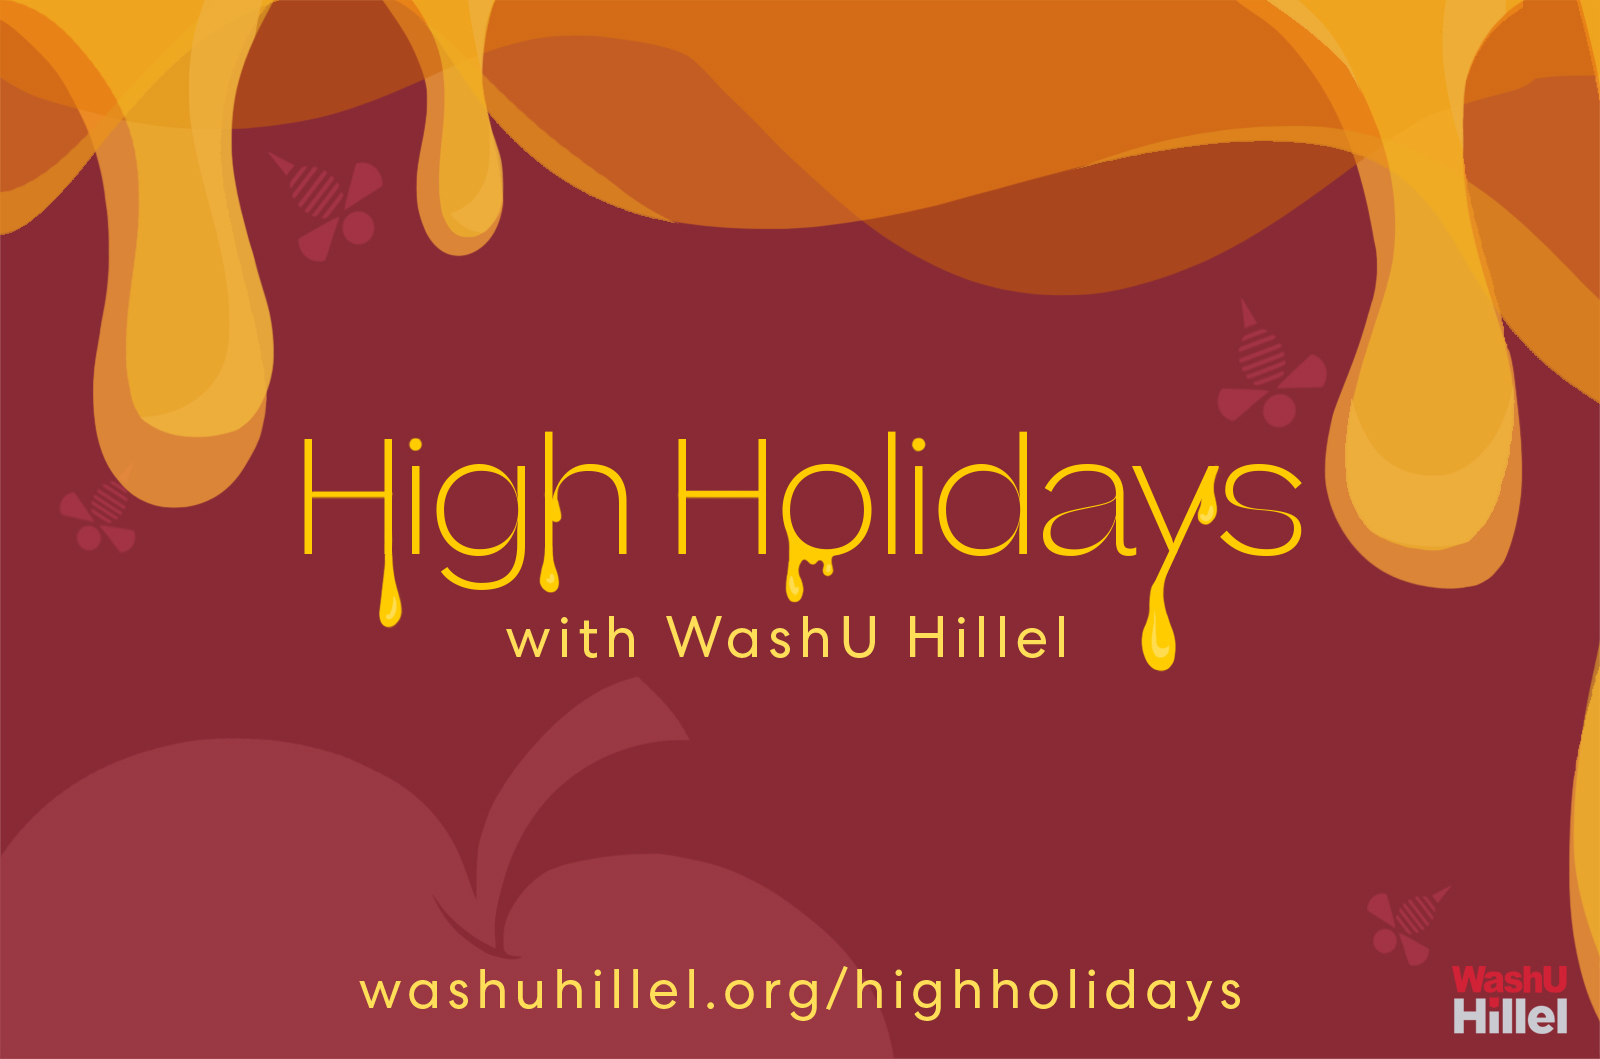 High Holidays with WashU Hillel